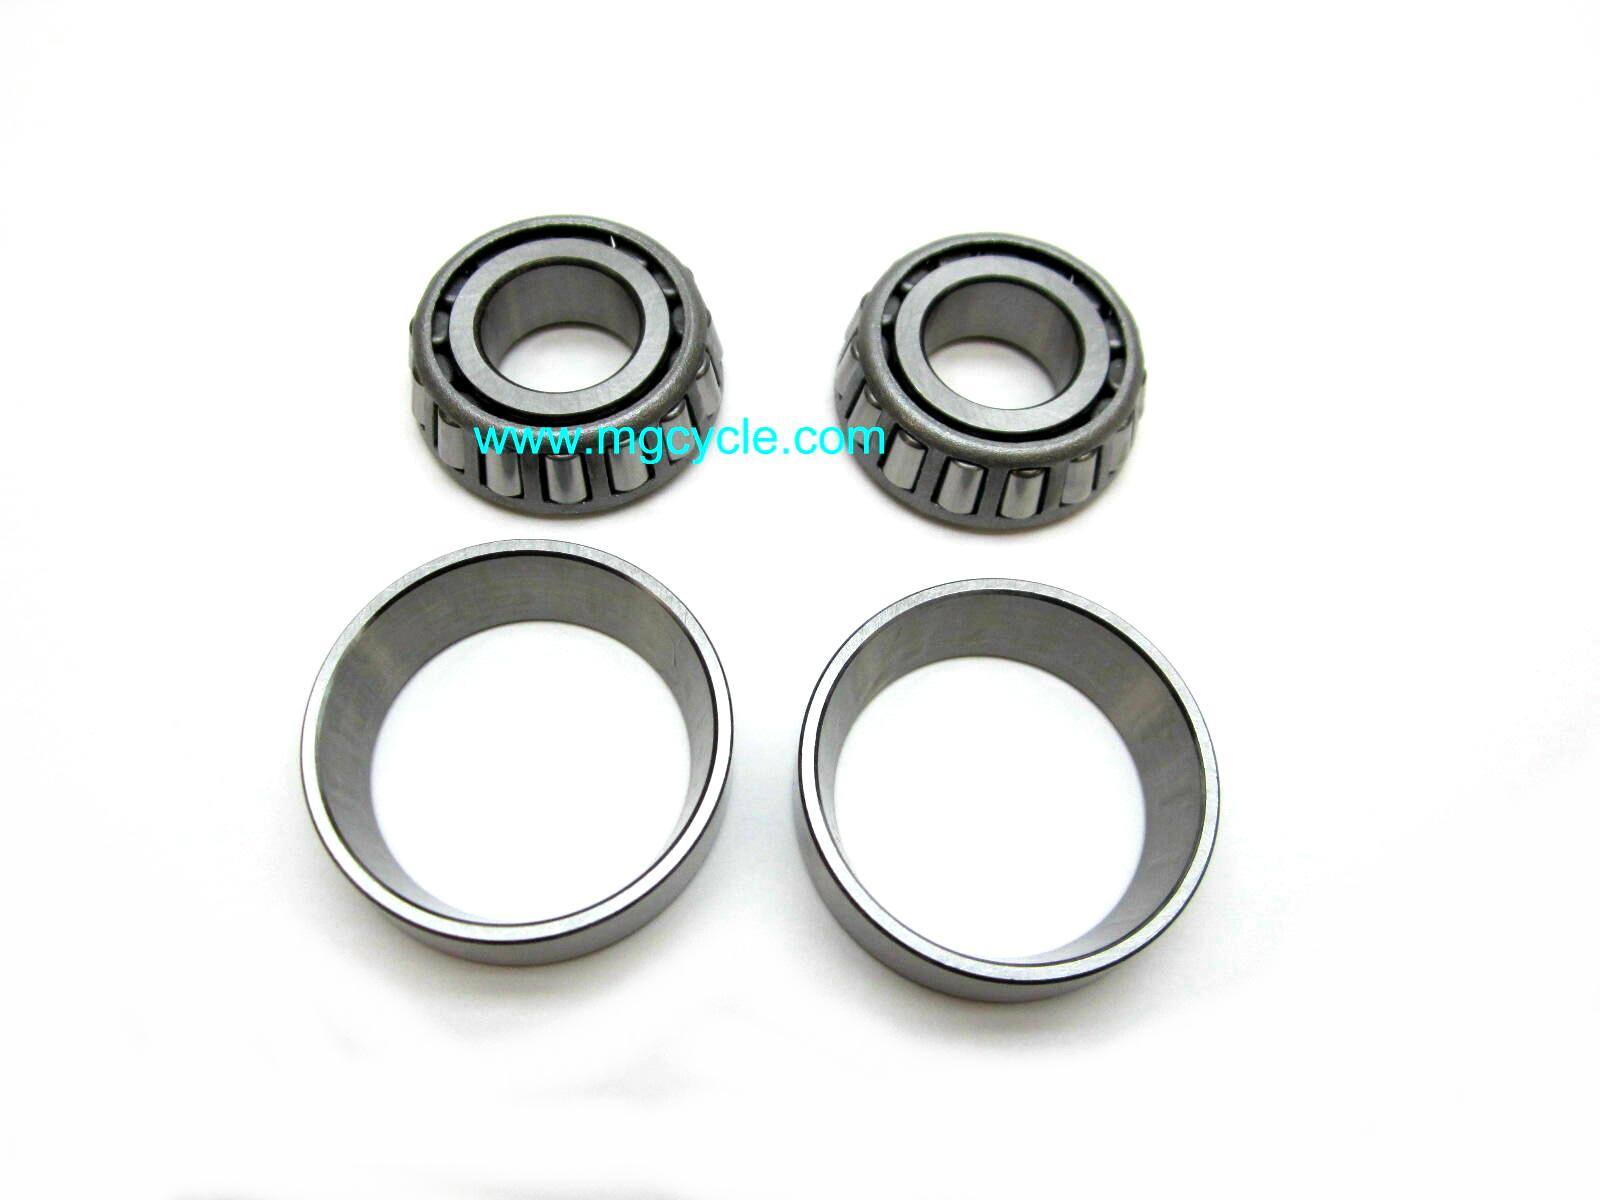 swingarm pivot bearing, big twins